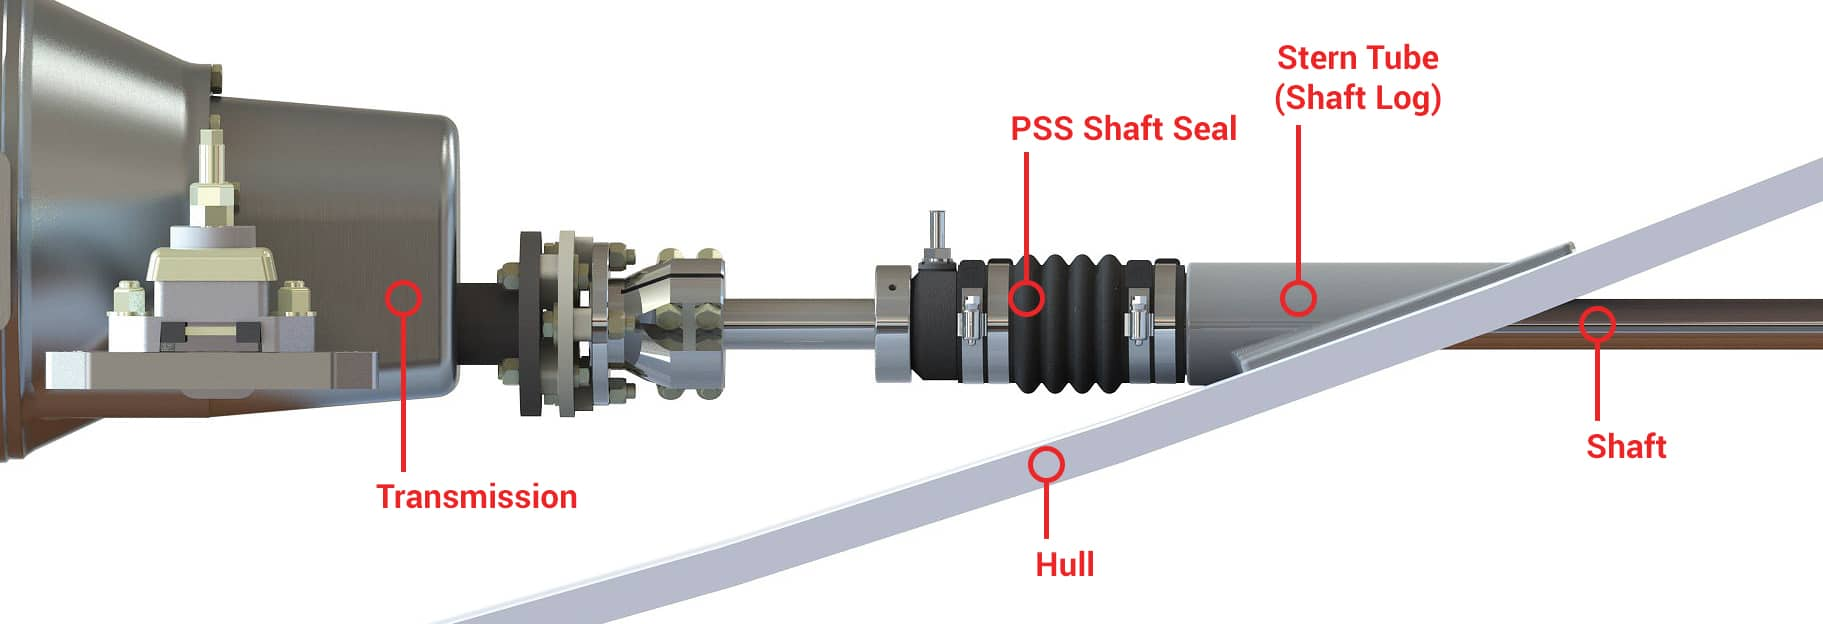 How works PSS shaft seal